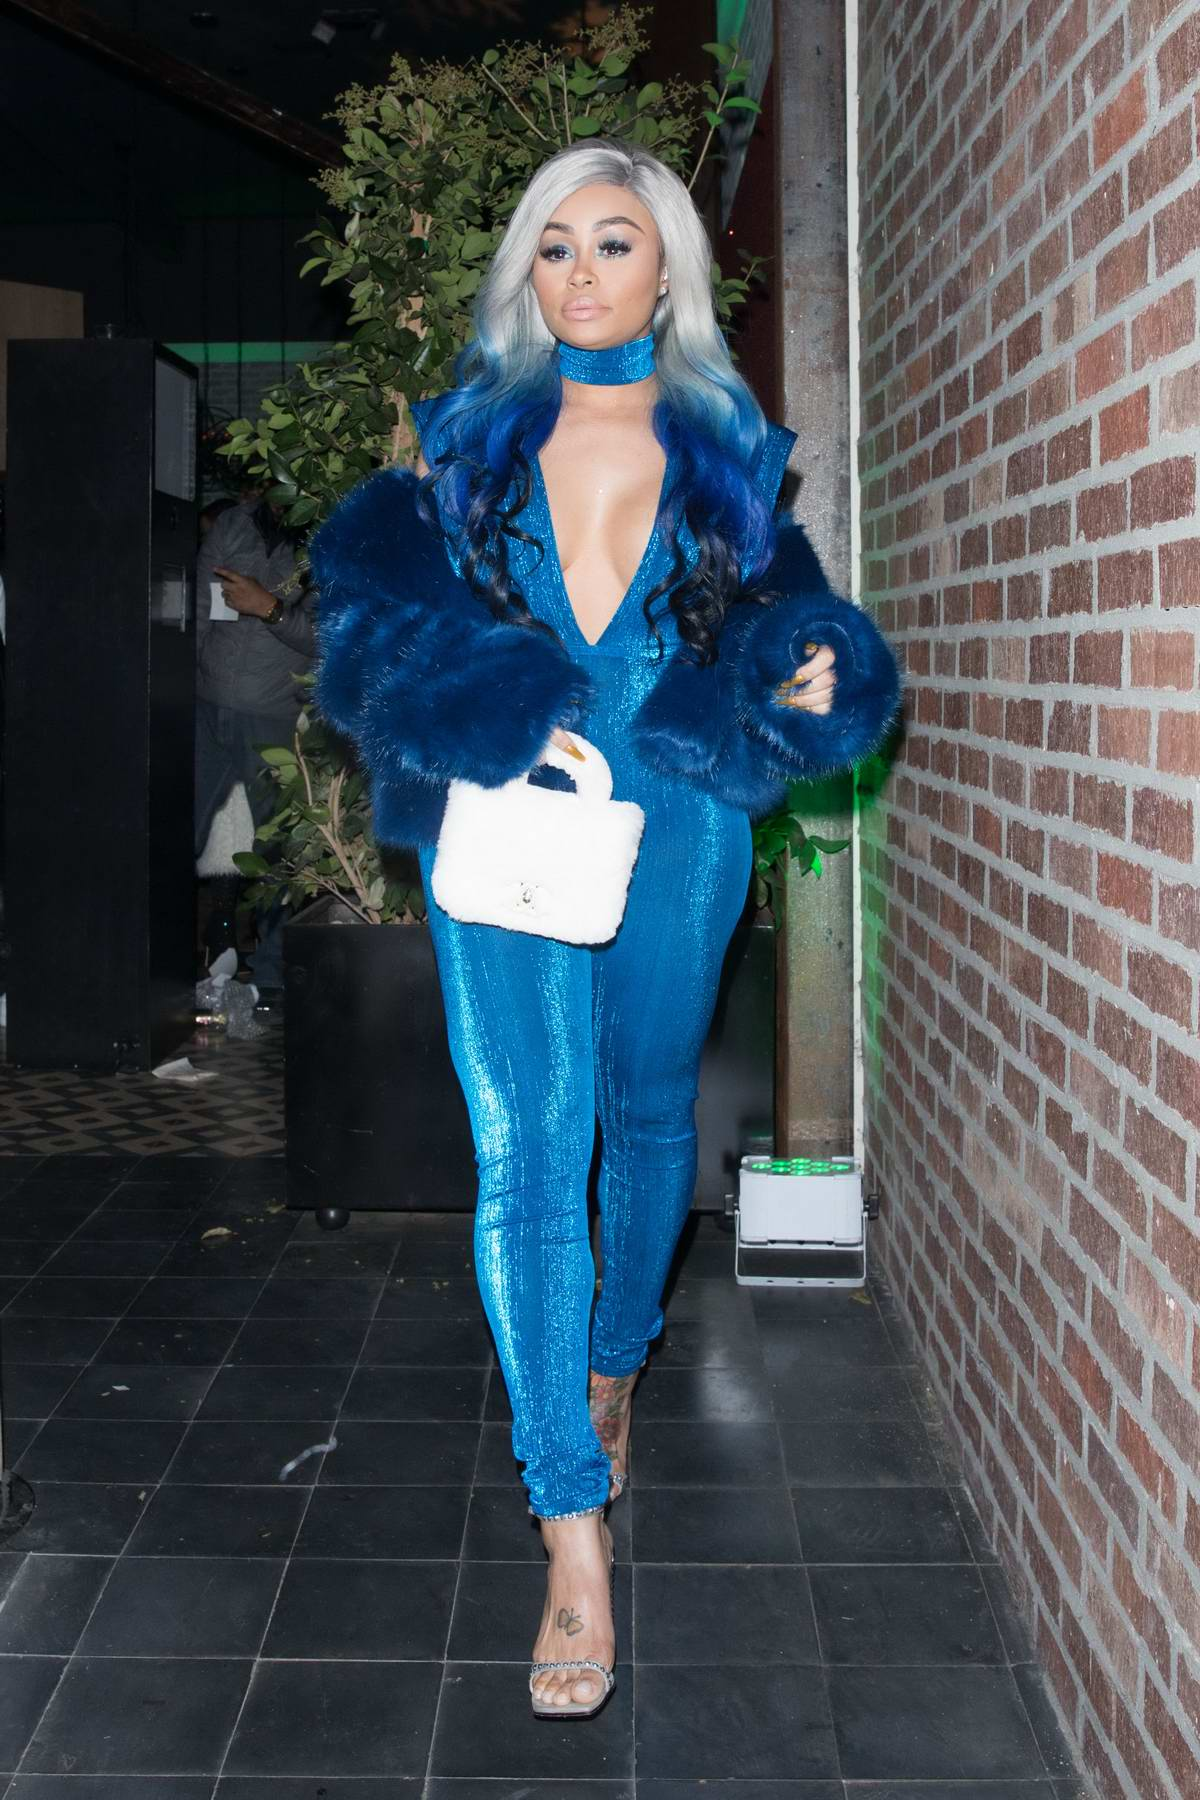 Blac Chyna wearing electric blue outfit to match her hair while at Karrueche Tran's holiday party at the Paloma in West Hollywood, Los Angeles